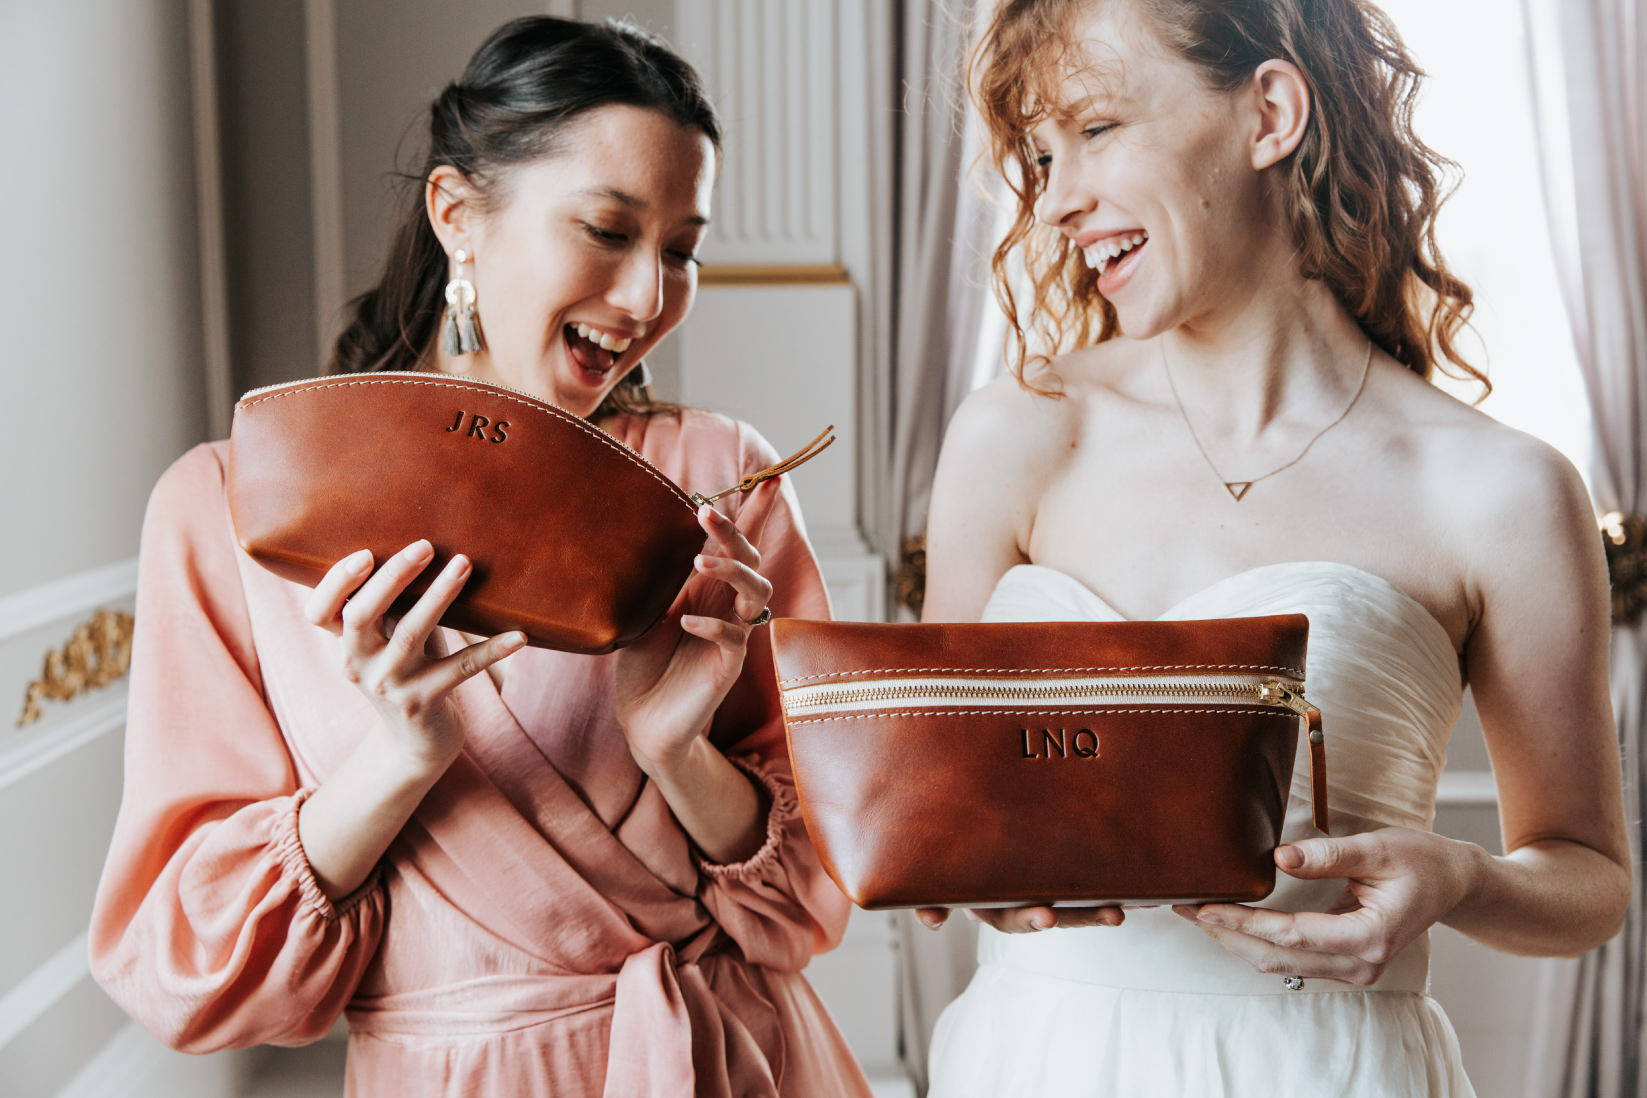 bridesmaid and bride holding makeup bags and smiling